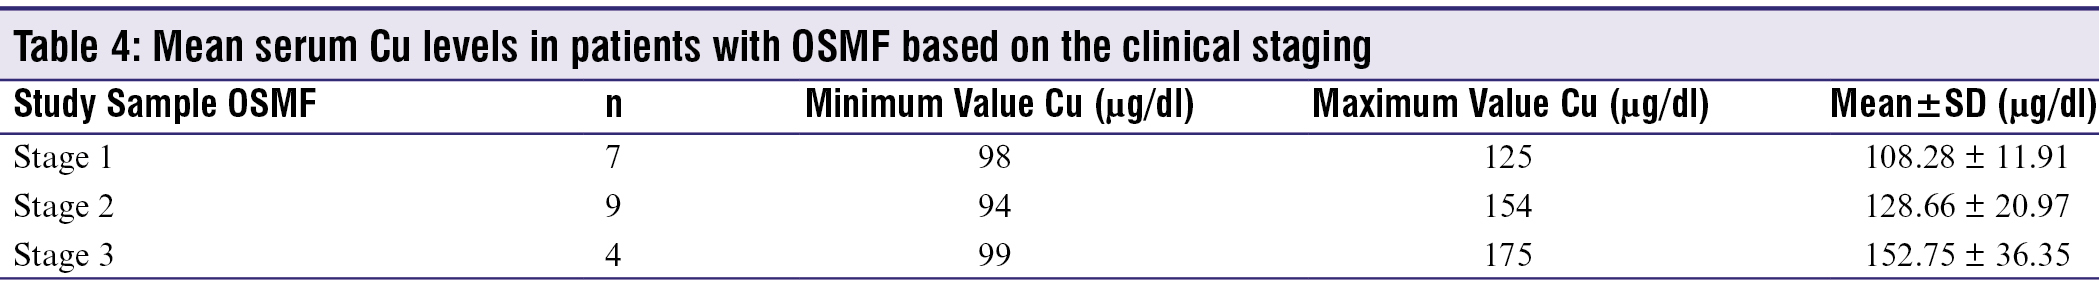 Table 4: Mean serum Cu levels in patients with OSMF based on the clinical staging